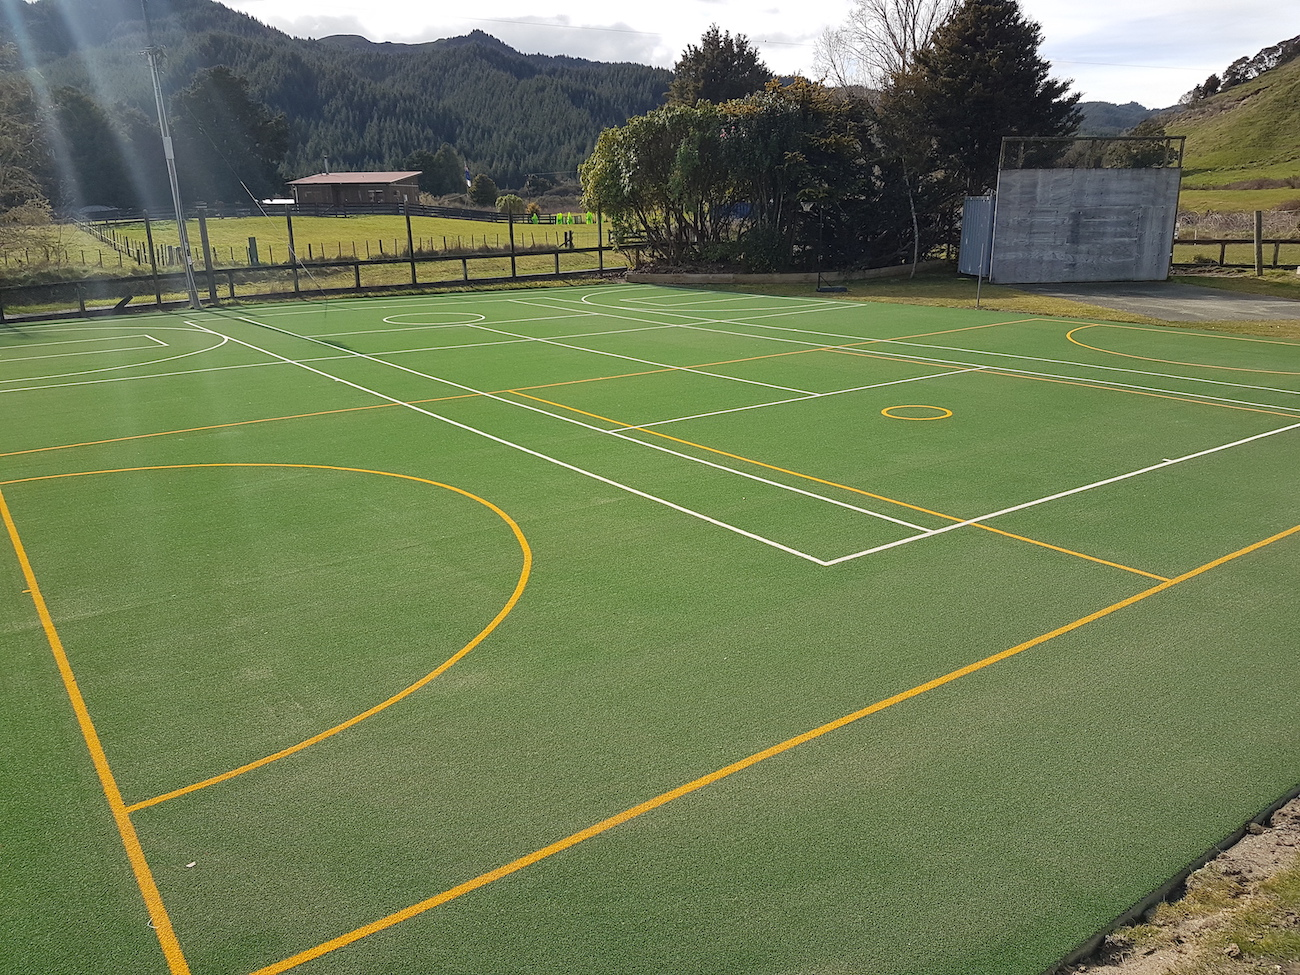 School tennis court